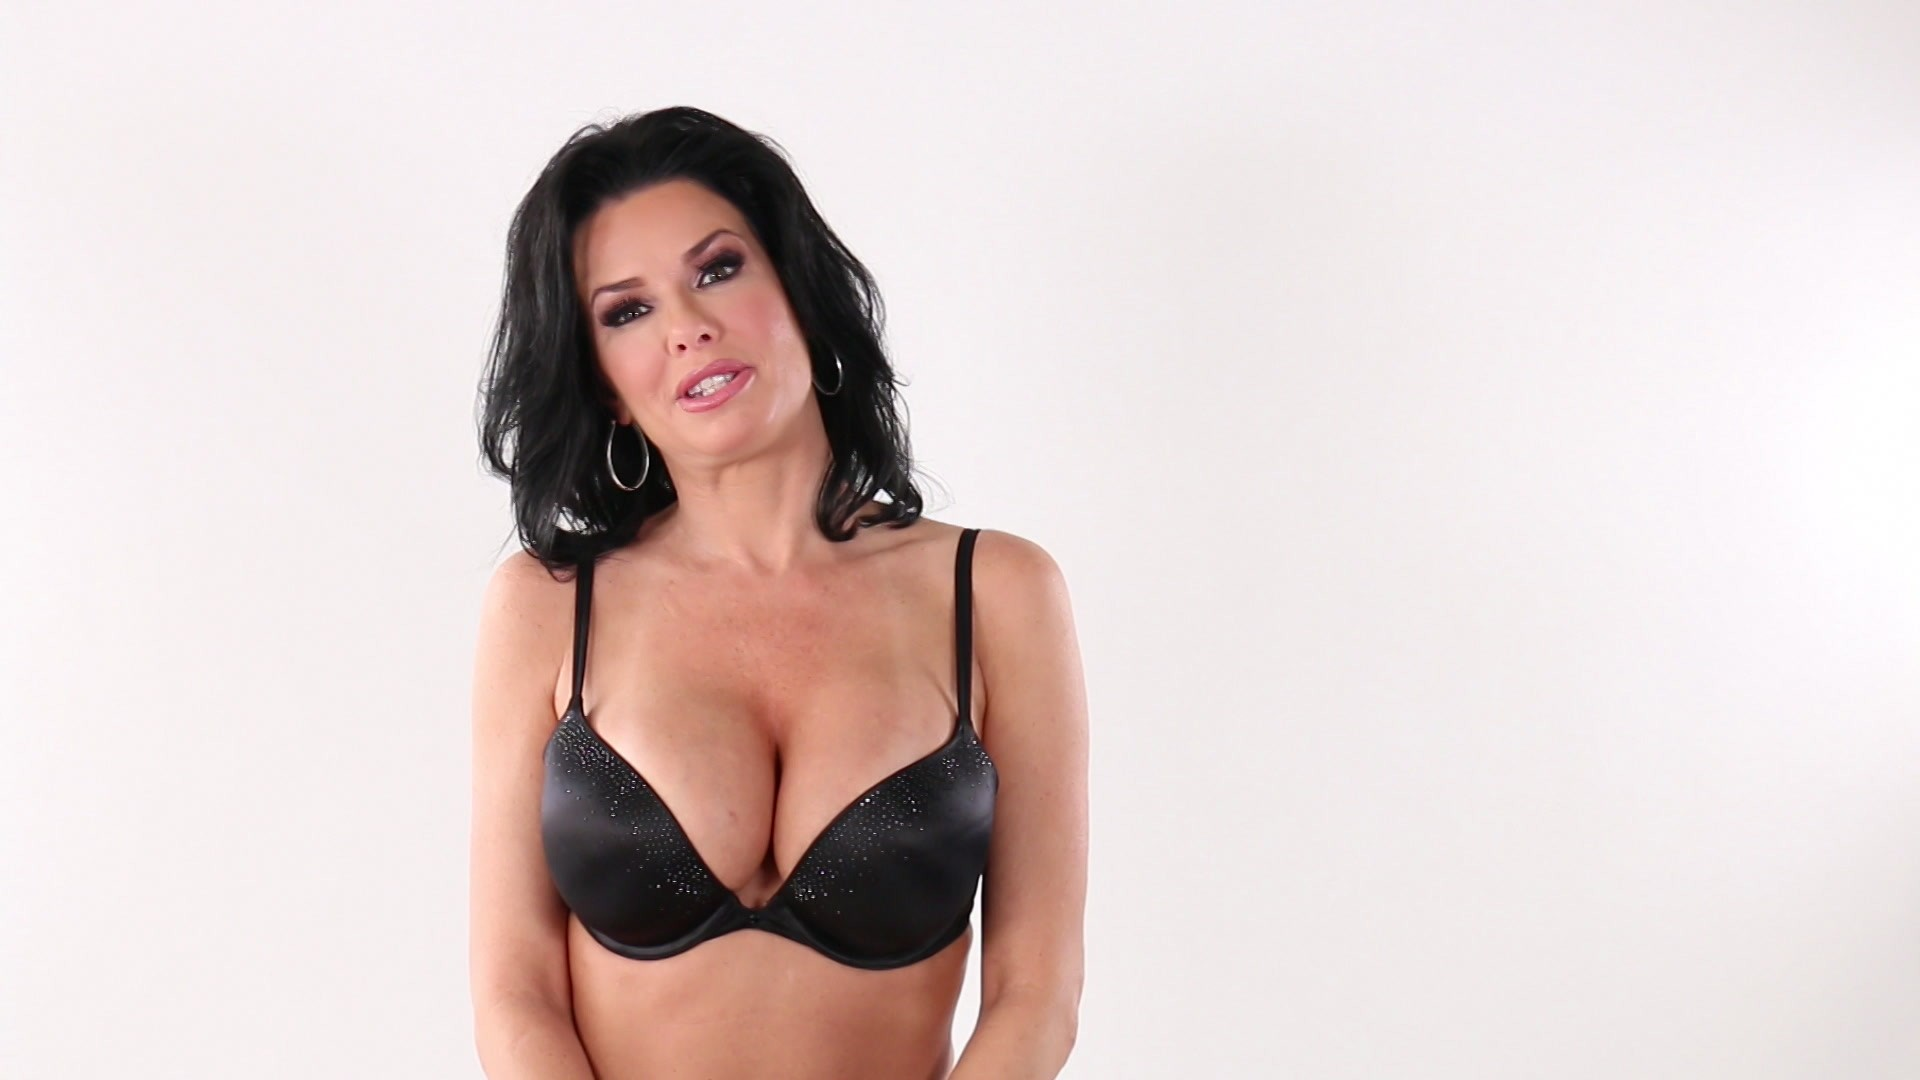 Scene with Veronica Avluv - image 1 out of 20